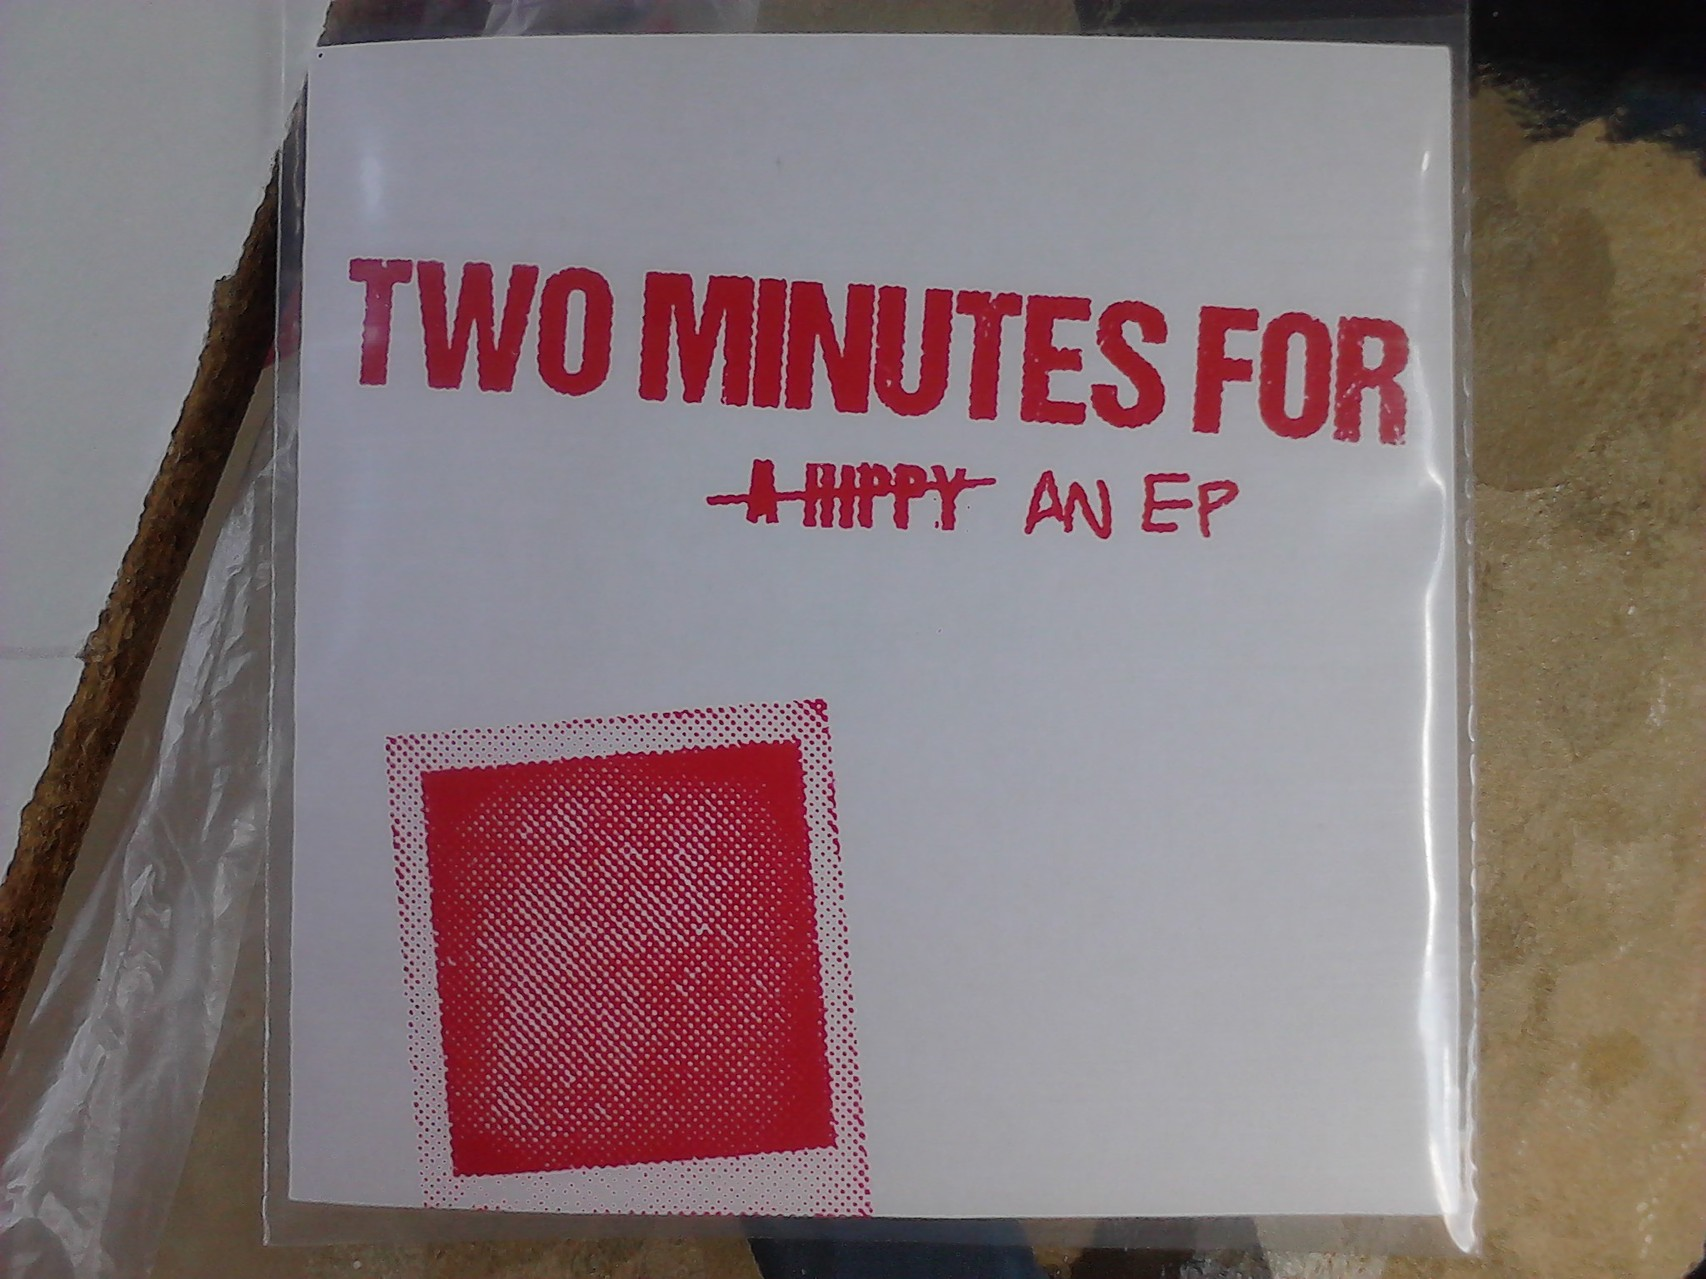 Two Minutes For - An EP record sleeves